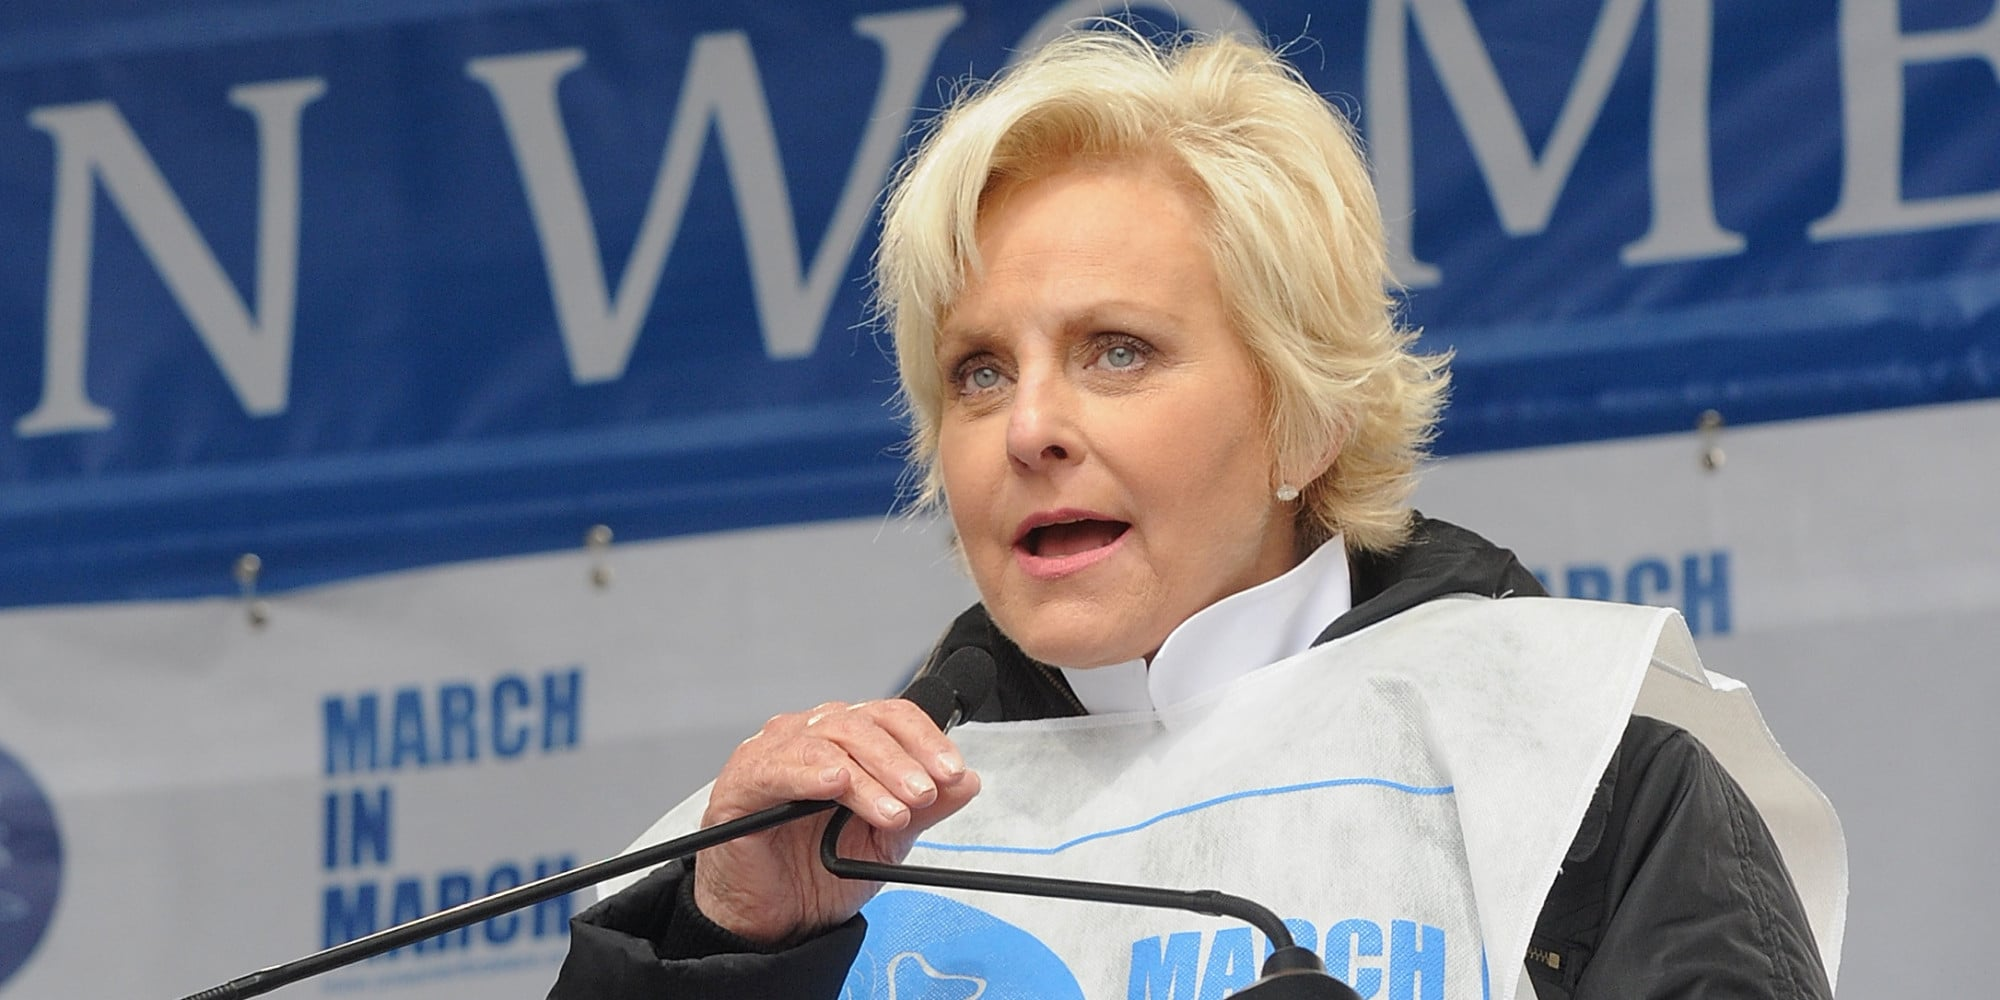 Cindy Lou Hensley McCain born May 20 1954 is an American businesswoman philanthropist and humanitarian and the wife of longtime United States Senator and 2008